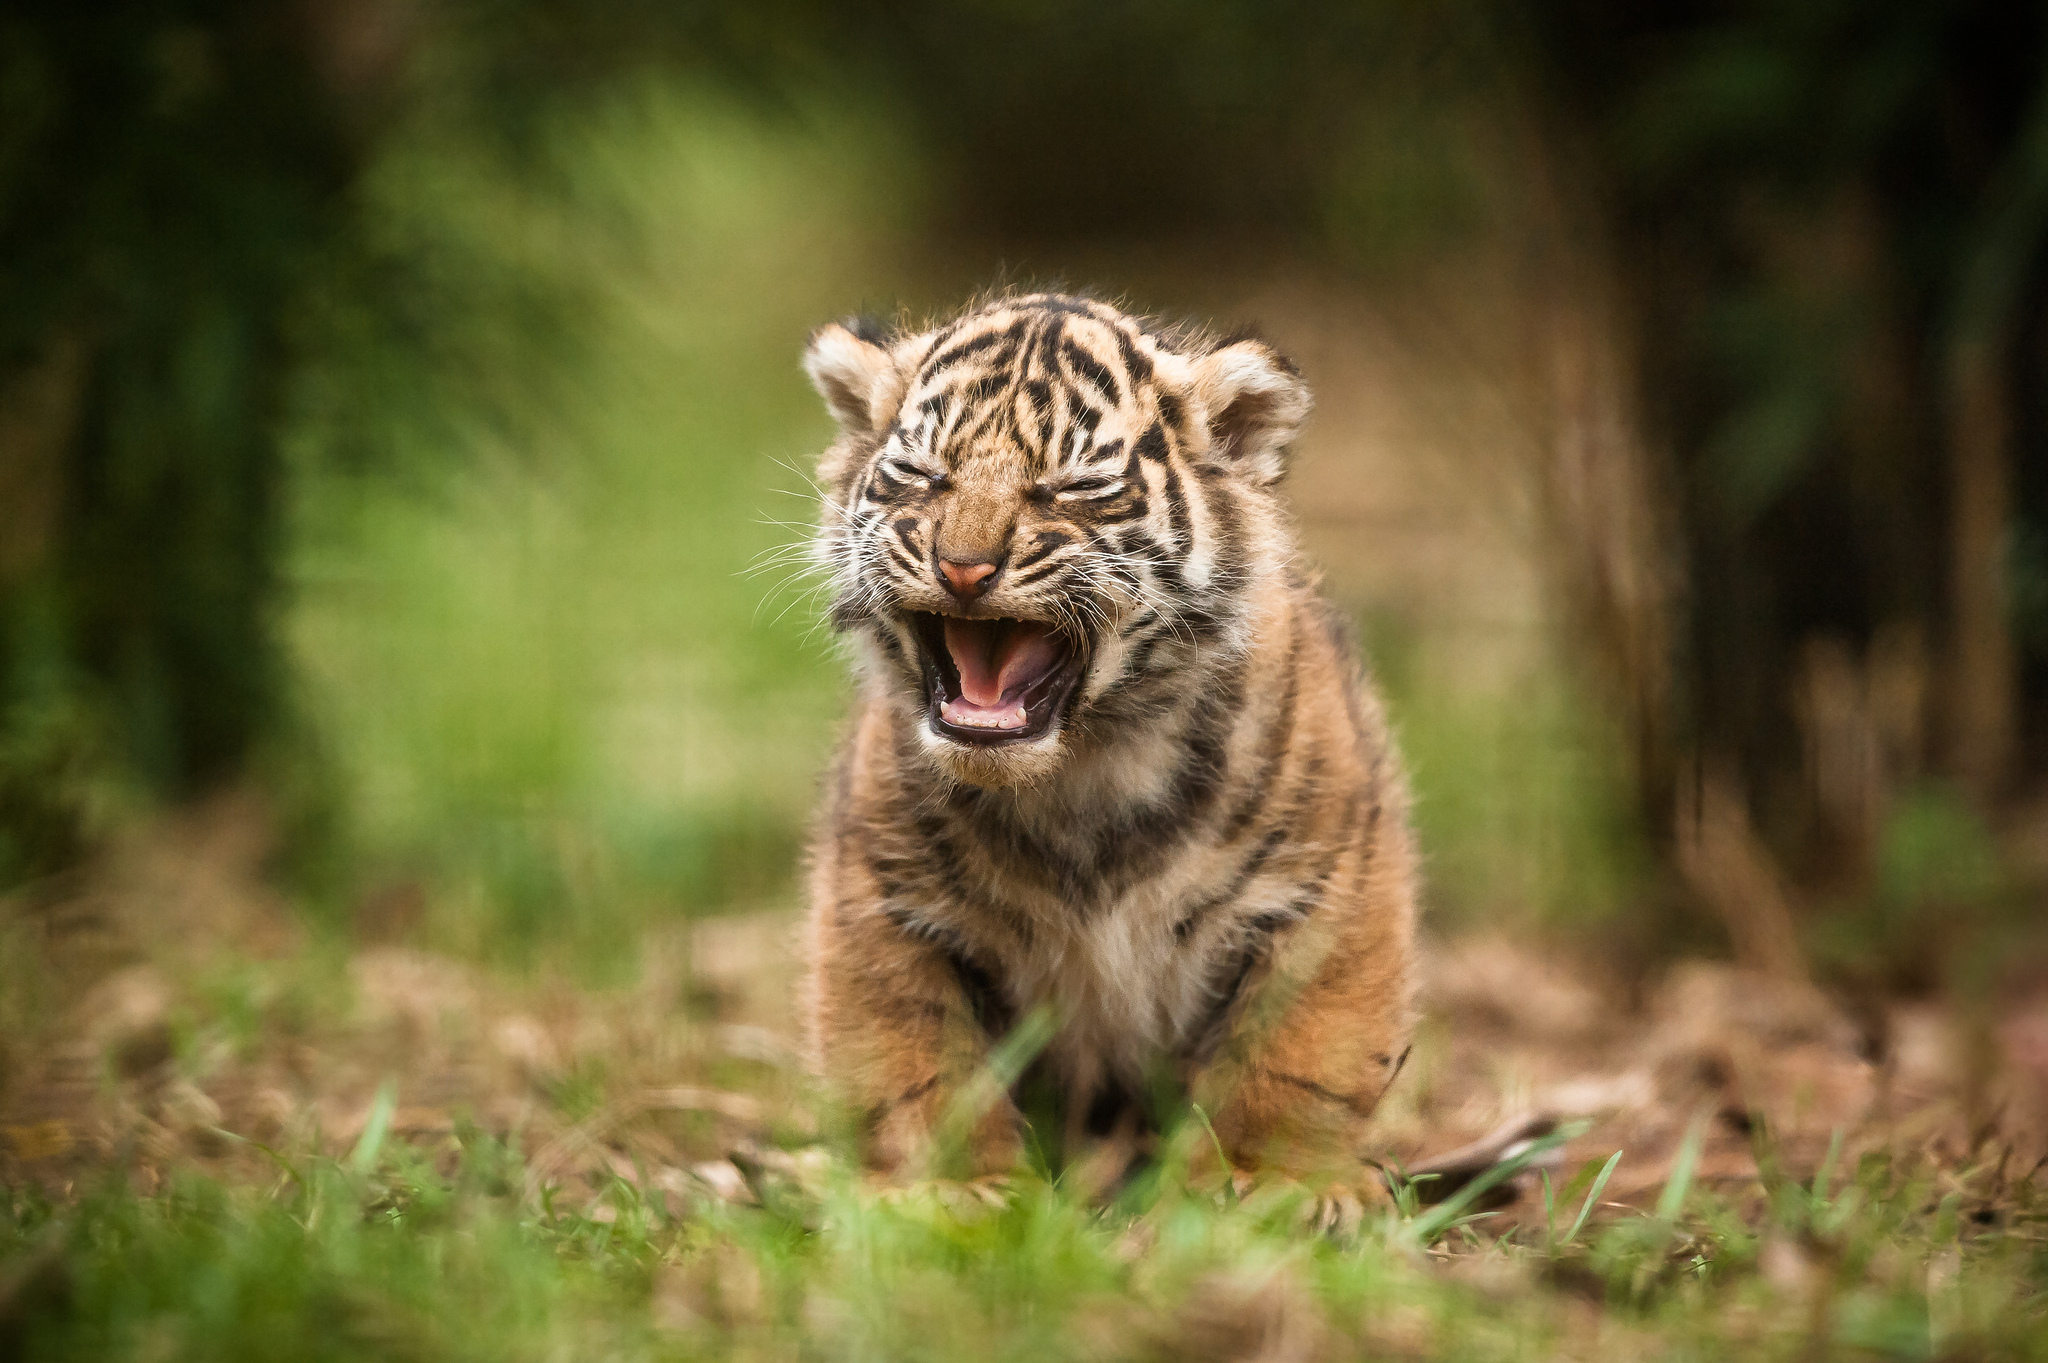 72760 download wallpaper Animals, Tiger, Young, Joey, Scream, Cry, Blur, Smooth screensavers and pictures for free